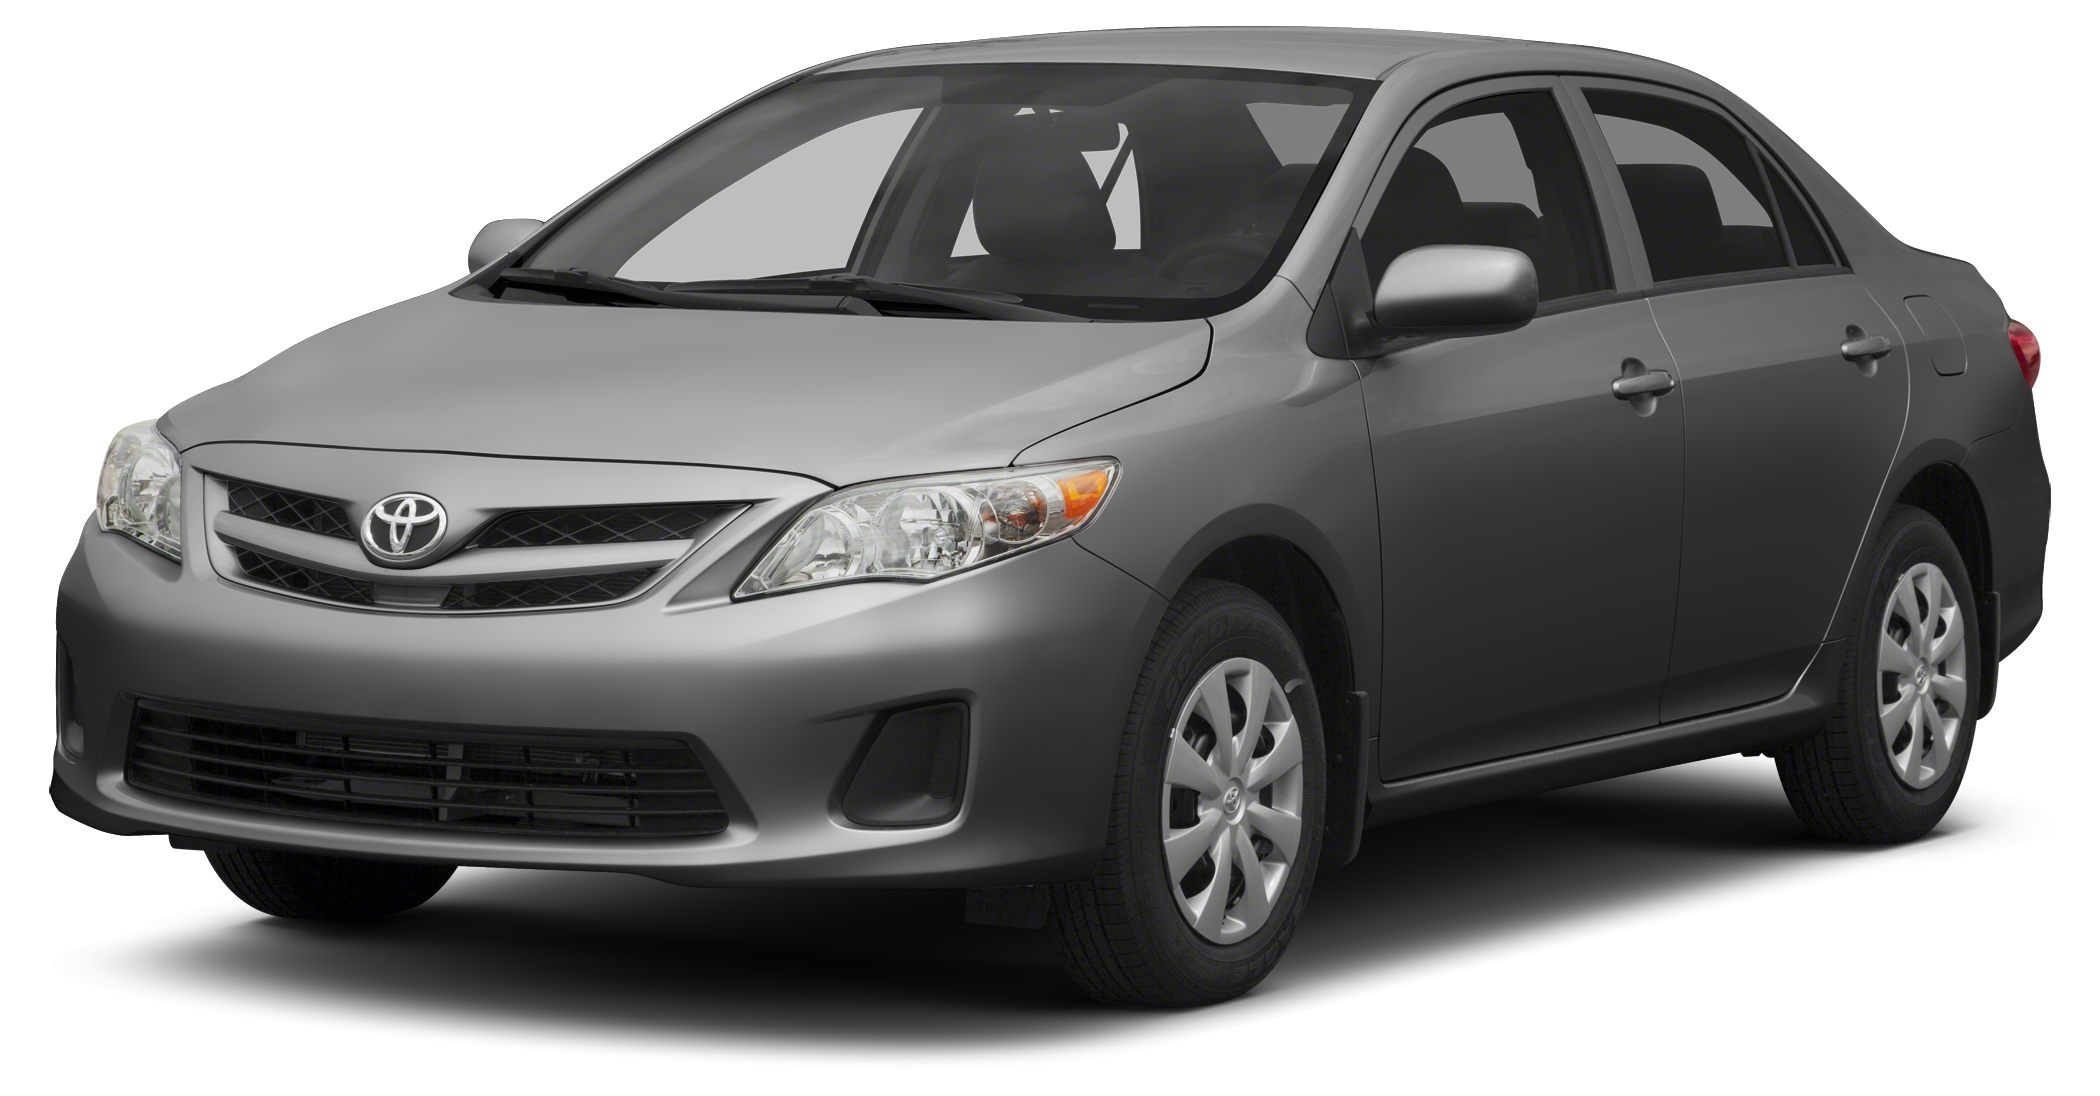 2013 Toyota Corolla LE LE trim CARFAX 1-Owner FUEL EFFICIENT 34 MPG Hwy26 MPG City Bluetooth C